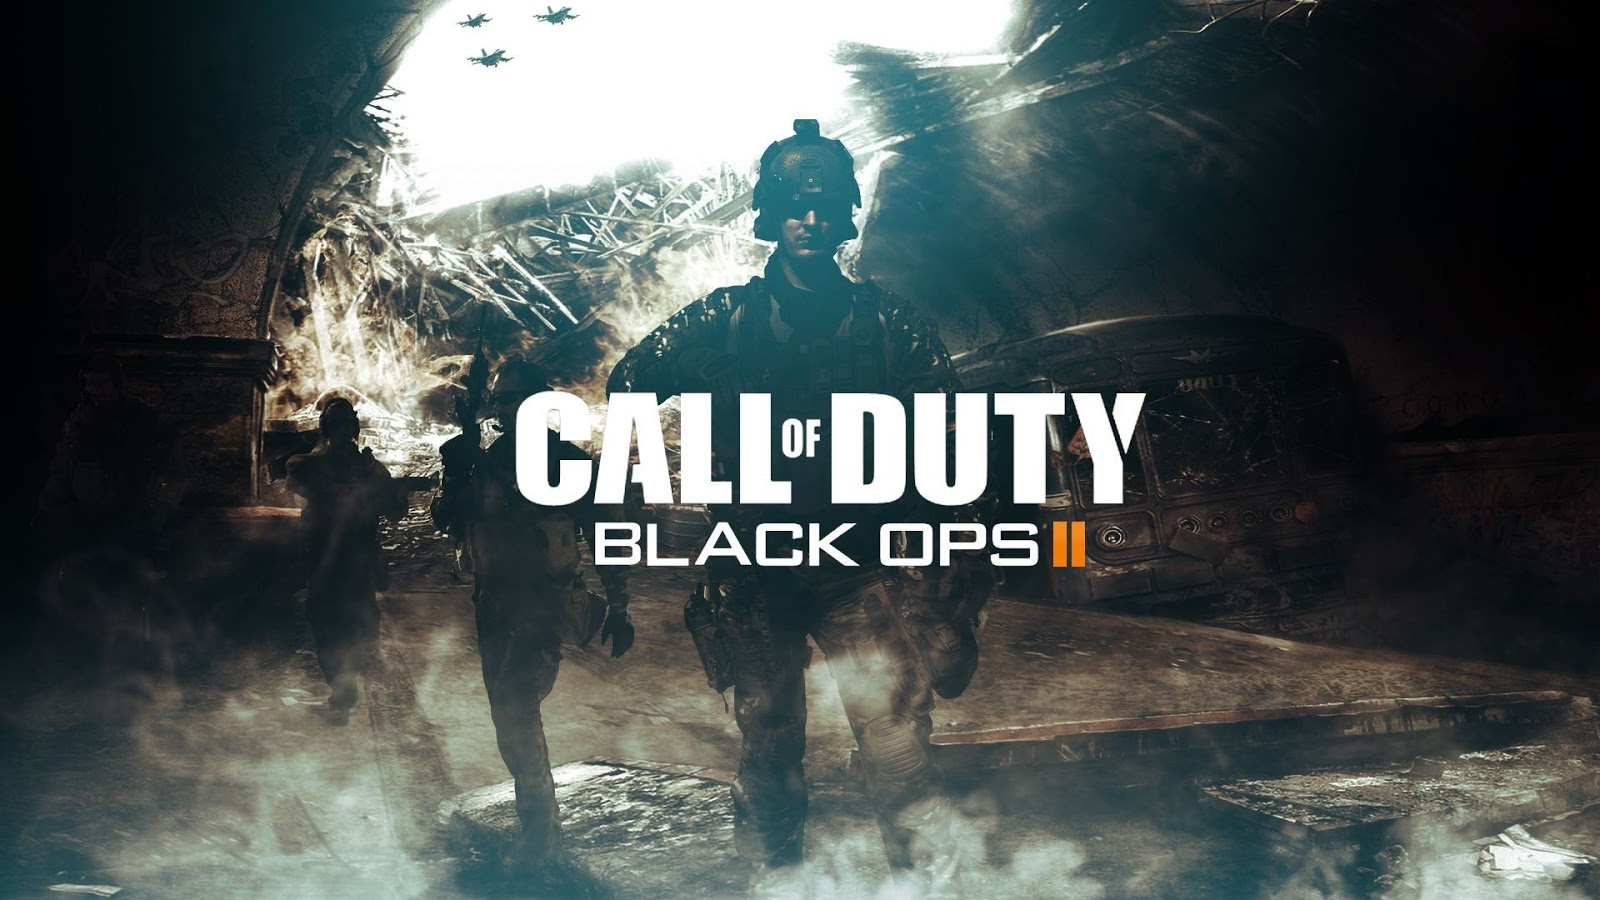 call of duty hd wallpapers 1920x1080 call of duty hd 1600x900